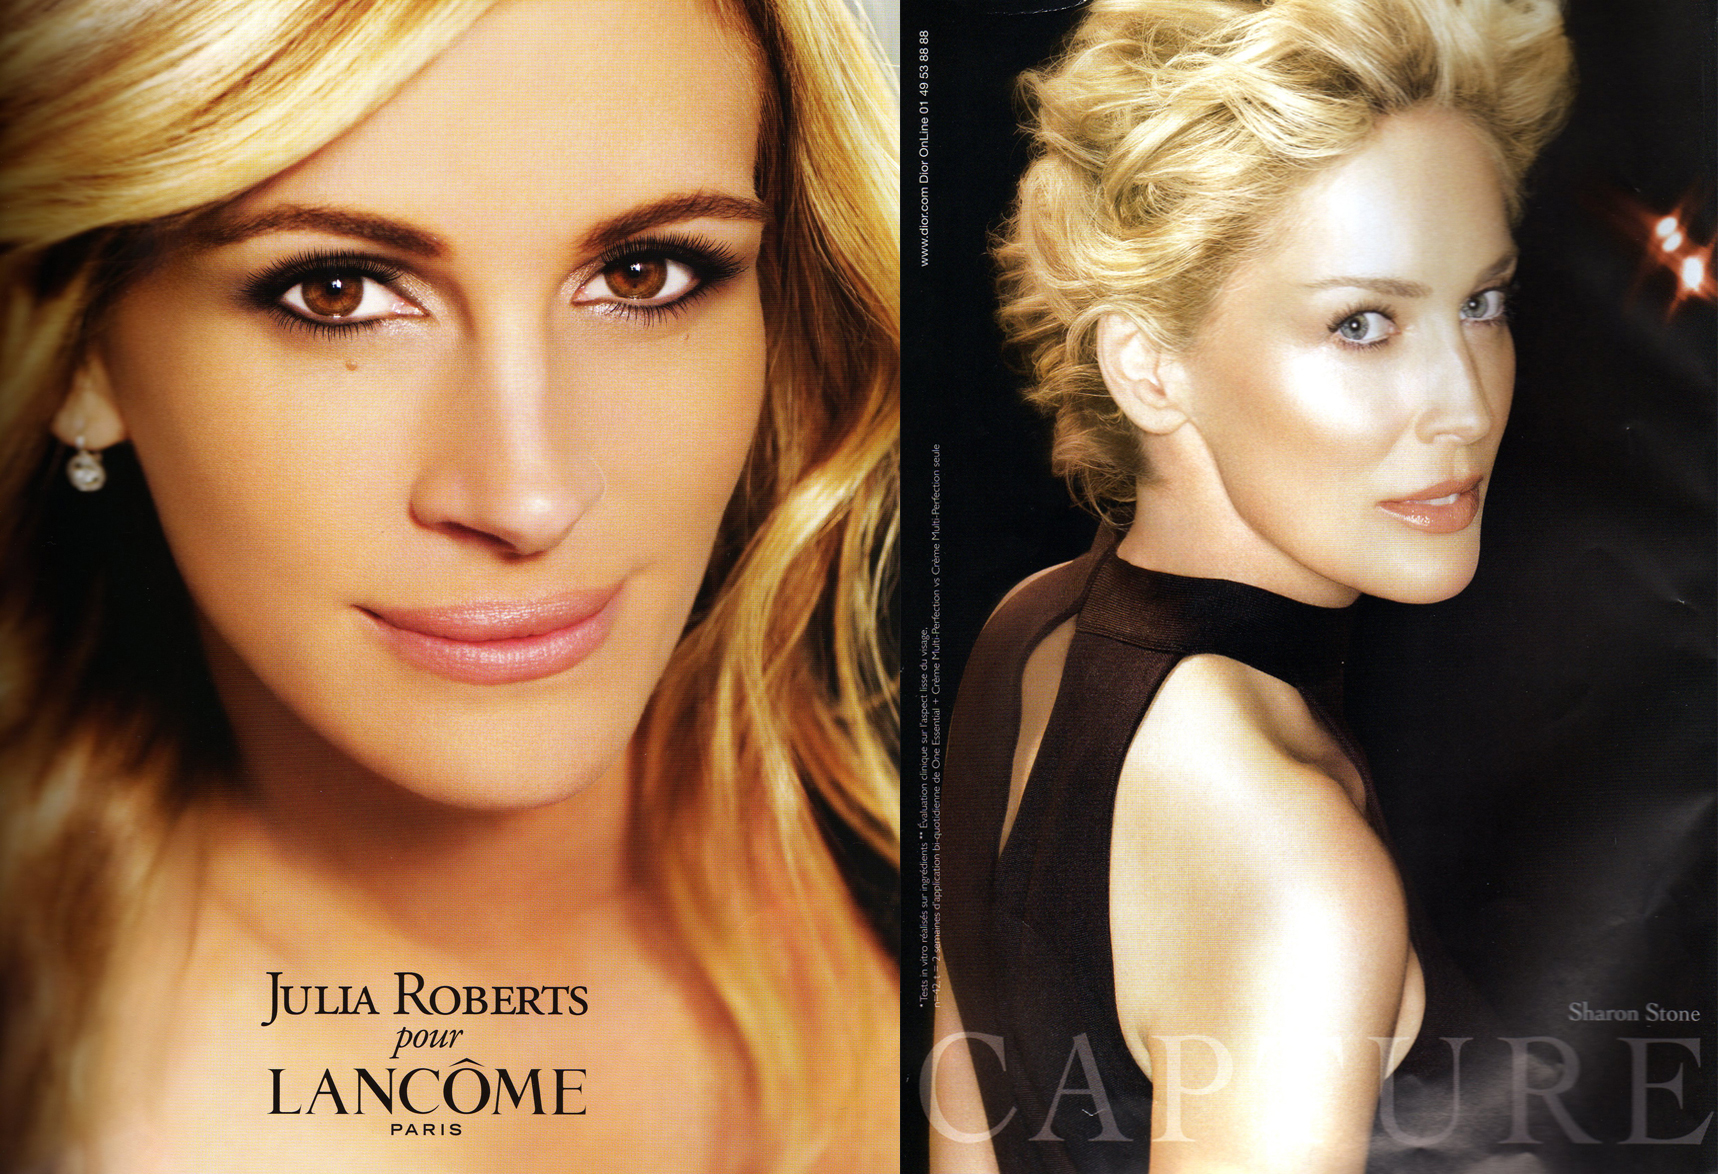 Julia Roberts for Lancôme and Sharon Stone for Dior